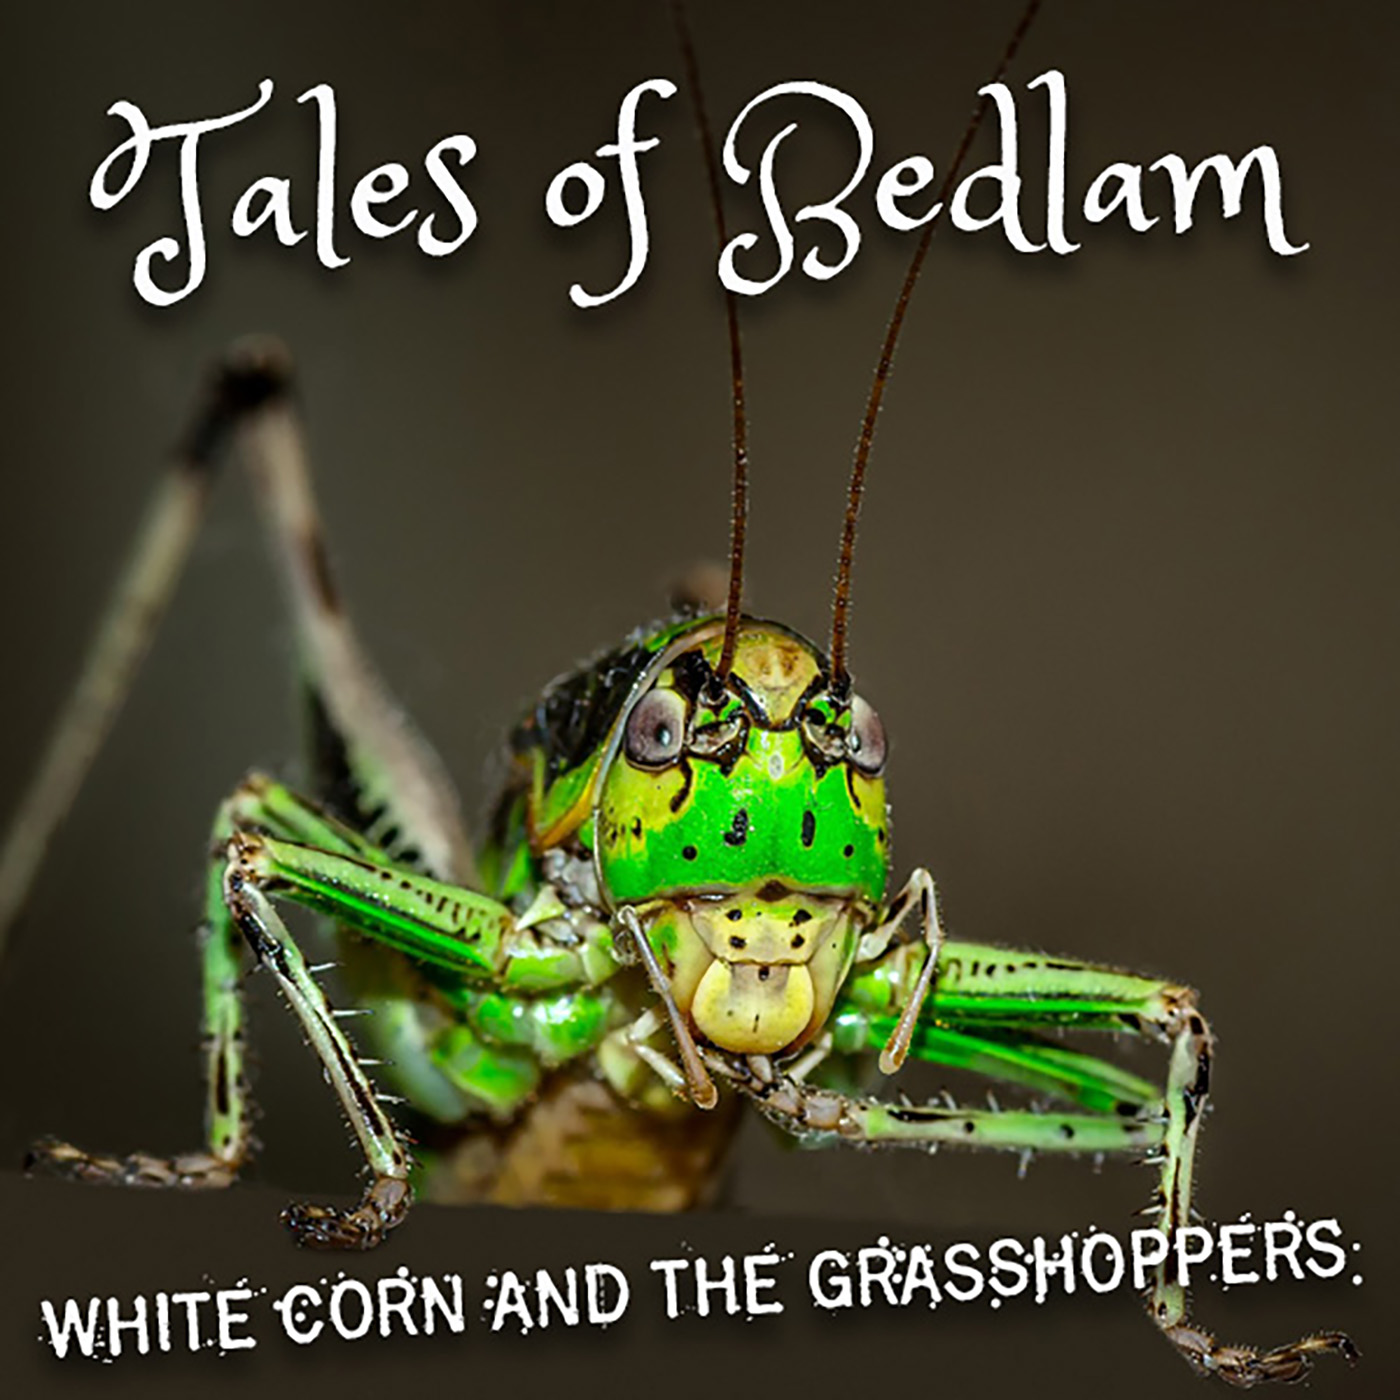 white_corn_and_the_grasshoppers_58.jpg